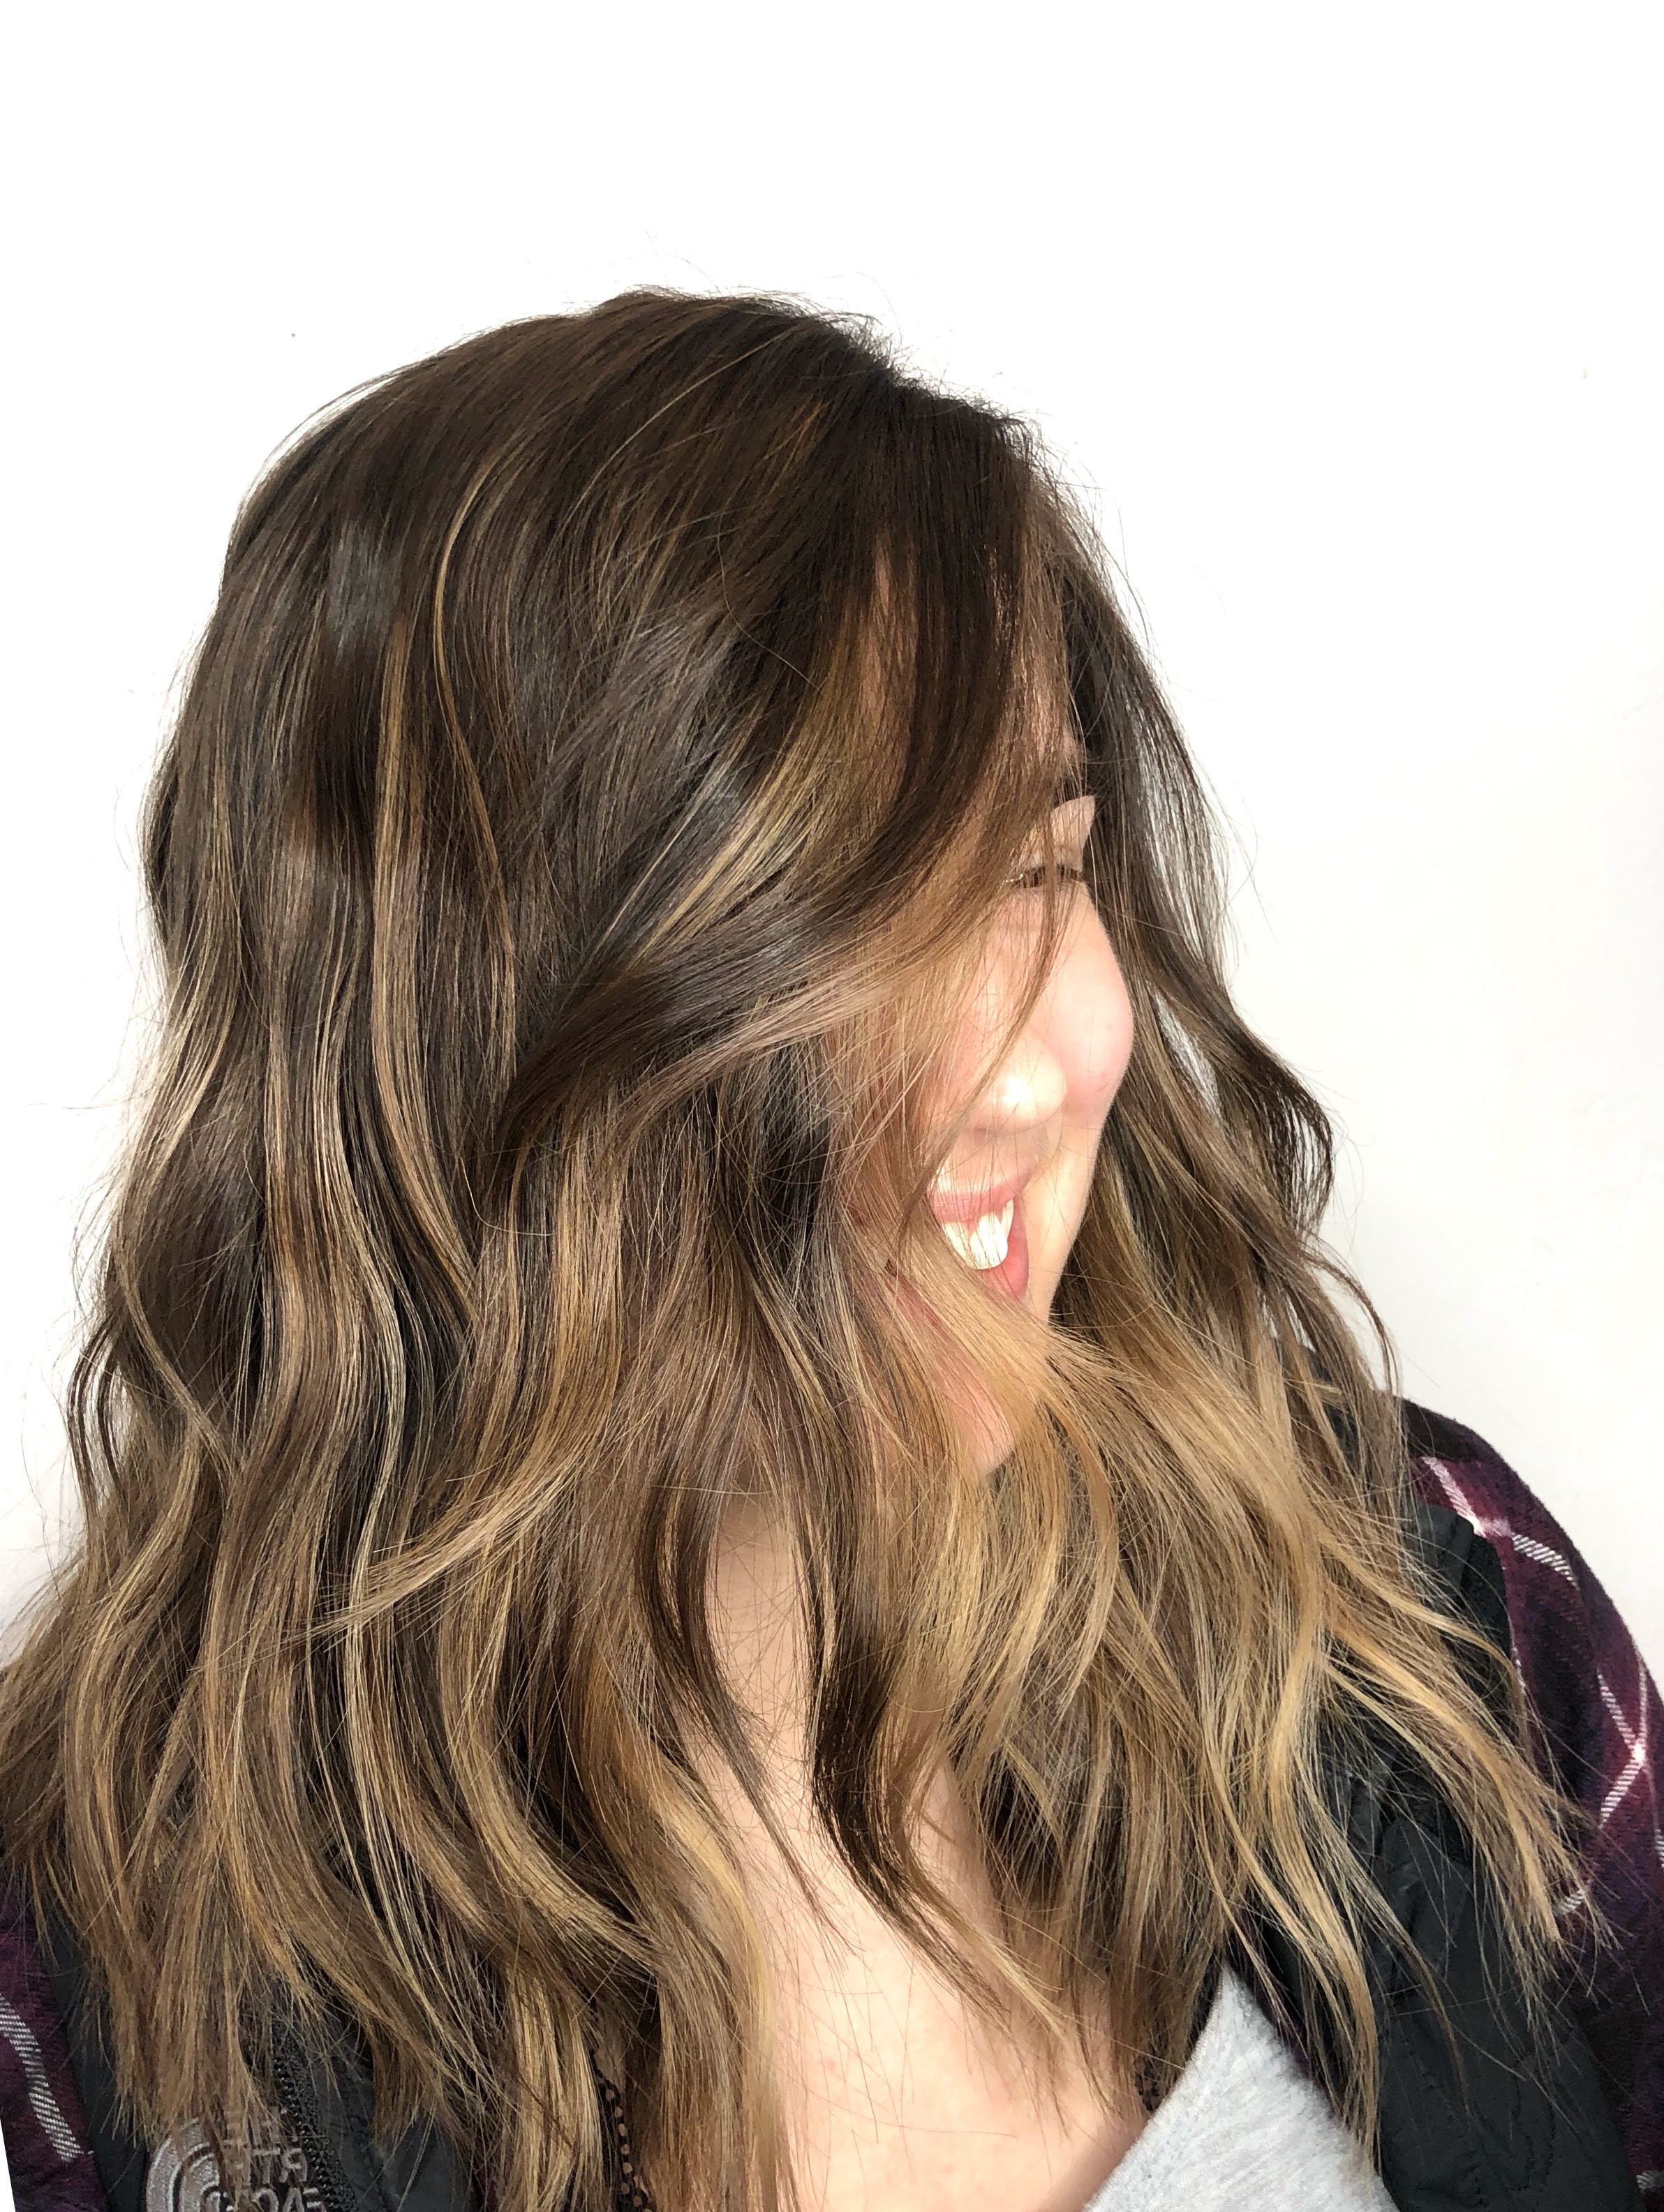 What Is Balayage? - When someone wants to color their hair, they often want it to look as natural as possible. It can be hard to work those dyes in with your current hair color in a natural way, and this is where balayage comes in to solve that problem.Balayage is a hand-painted style of coloring that creates natural, intertwined colors in your hair to make a final look that's authentic, beautiful, and transformative. The process depends far more on a freehand, personal touch compared to other services we offer, but the end result is a hairdo with a sun-kissed, natural look that grows in a softer fashion compared to traditional coloring methods. You'll also have far less maintenance with your hair, as an added bonus!Want to learn more about balayage or schedule an appointment with the best place for balayage in Salem, OR? Send me a message today, and let's get you the hair you've always wanted!